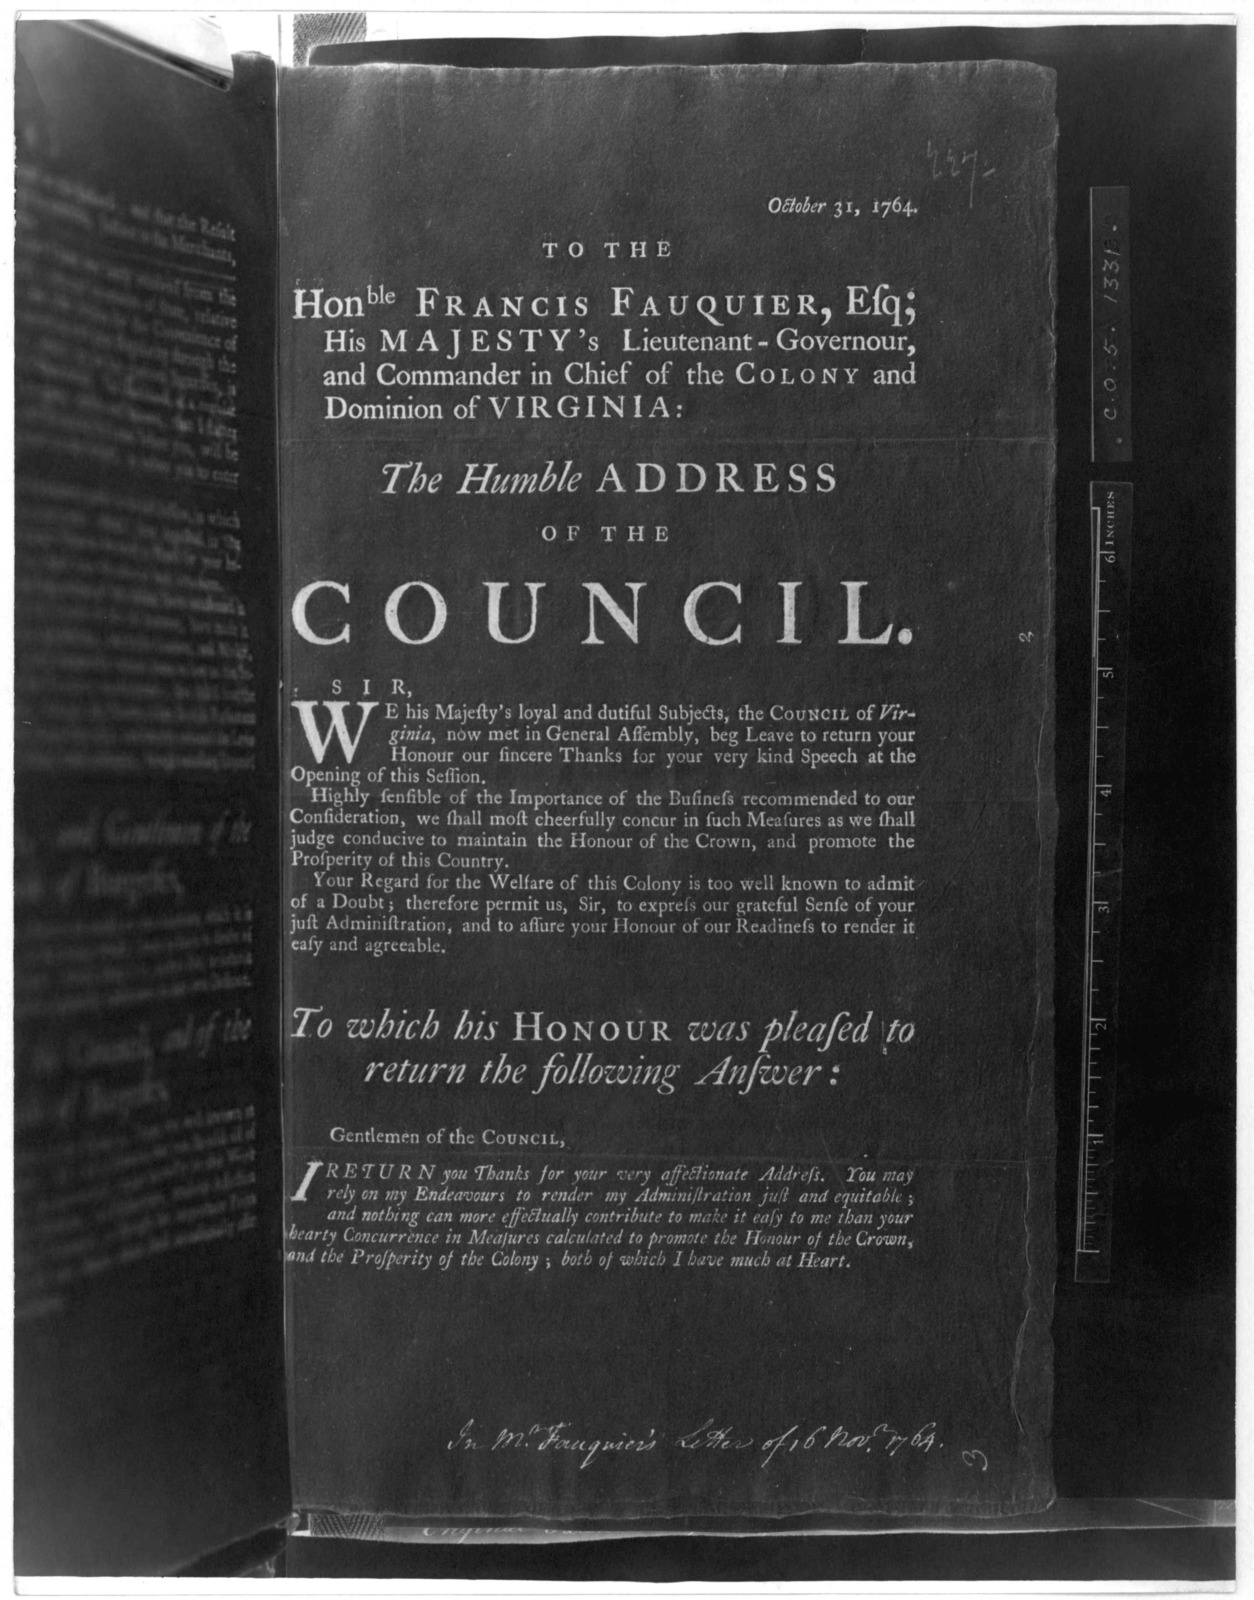 October 31, 1764. To the Honble Francis Fauquier, Esq: His Majesty's Lieutenant-Governour and commander in chief of the Colony and Dominion of Virginia: The humble address of the Council ... To which his Honour was pleased to return the followin